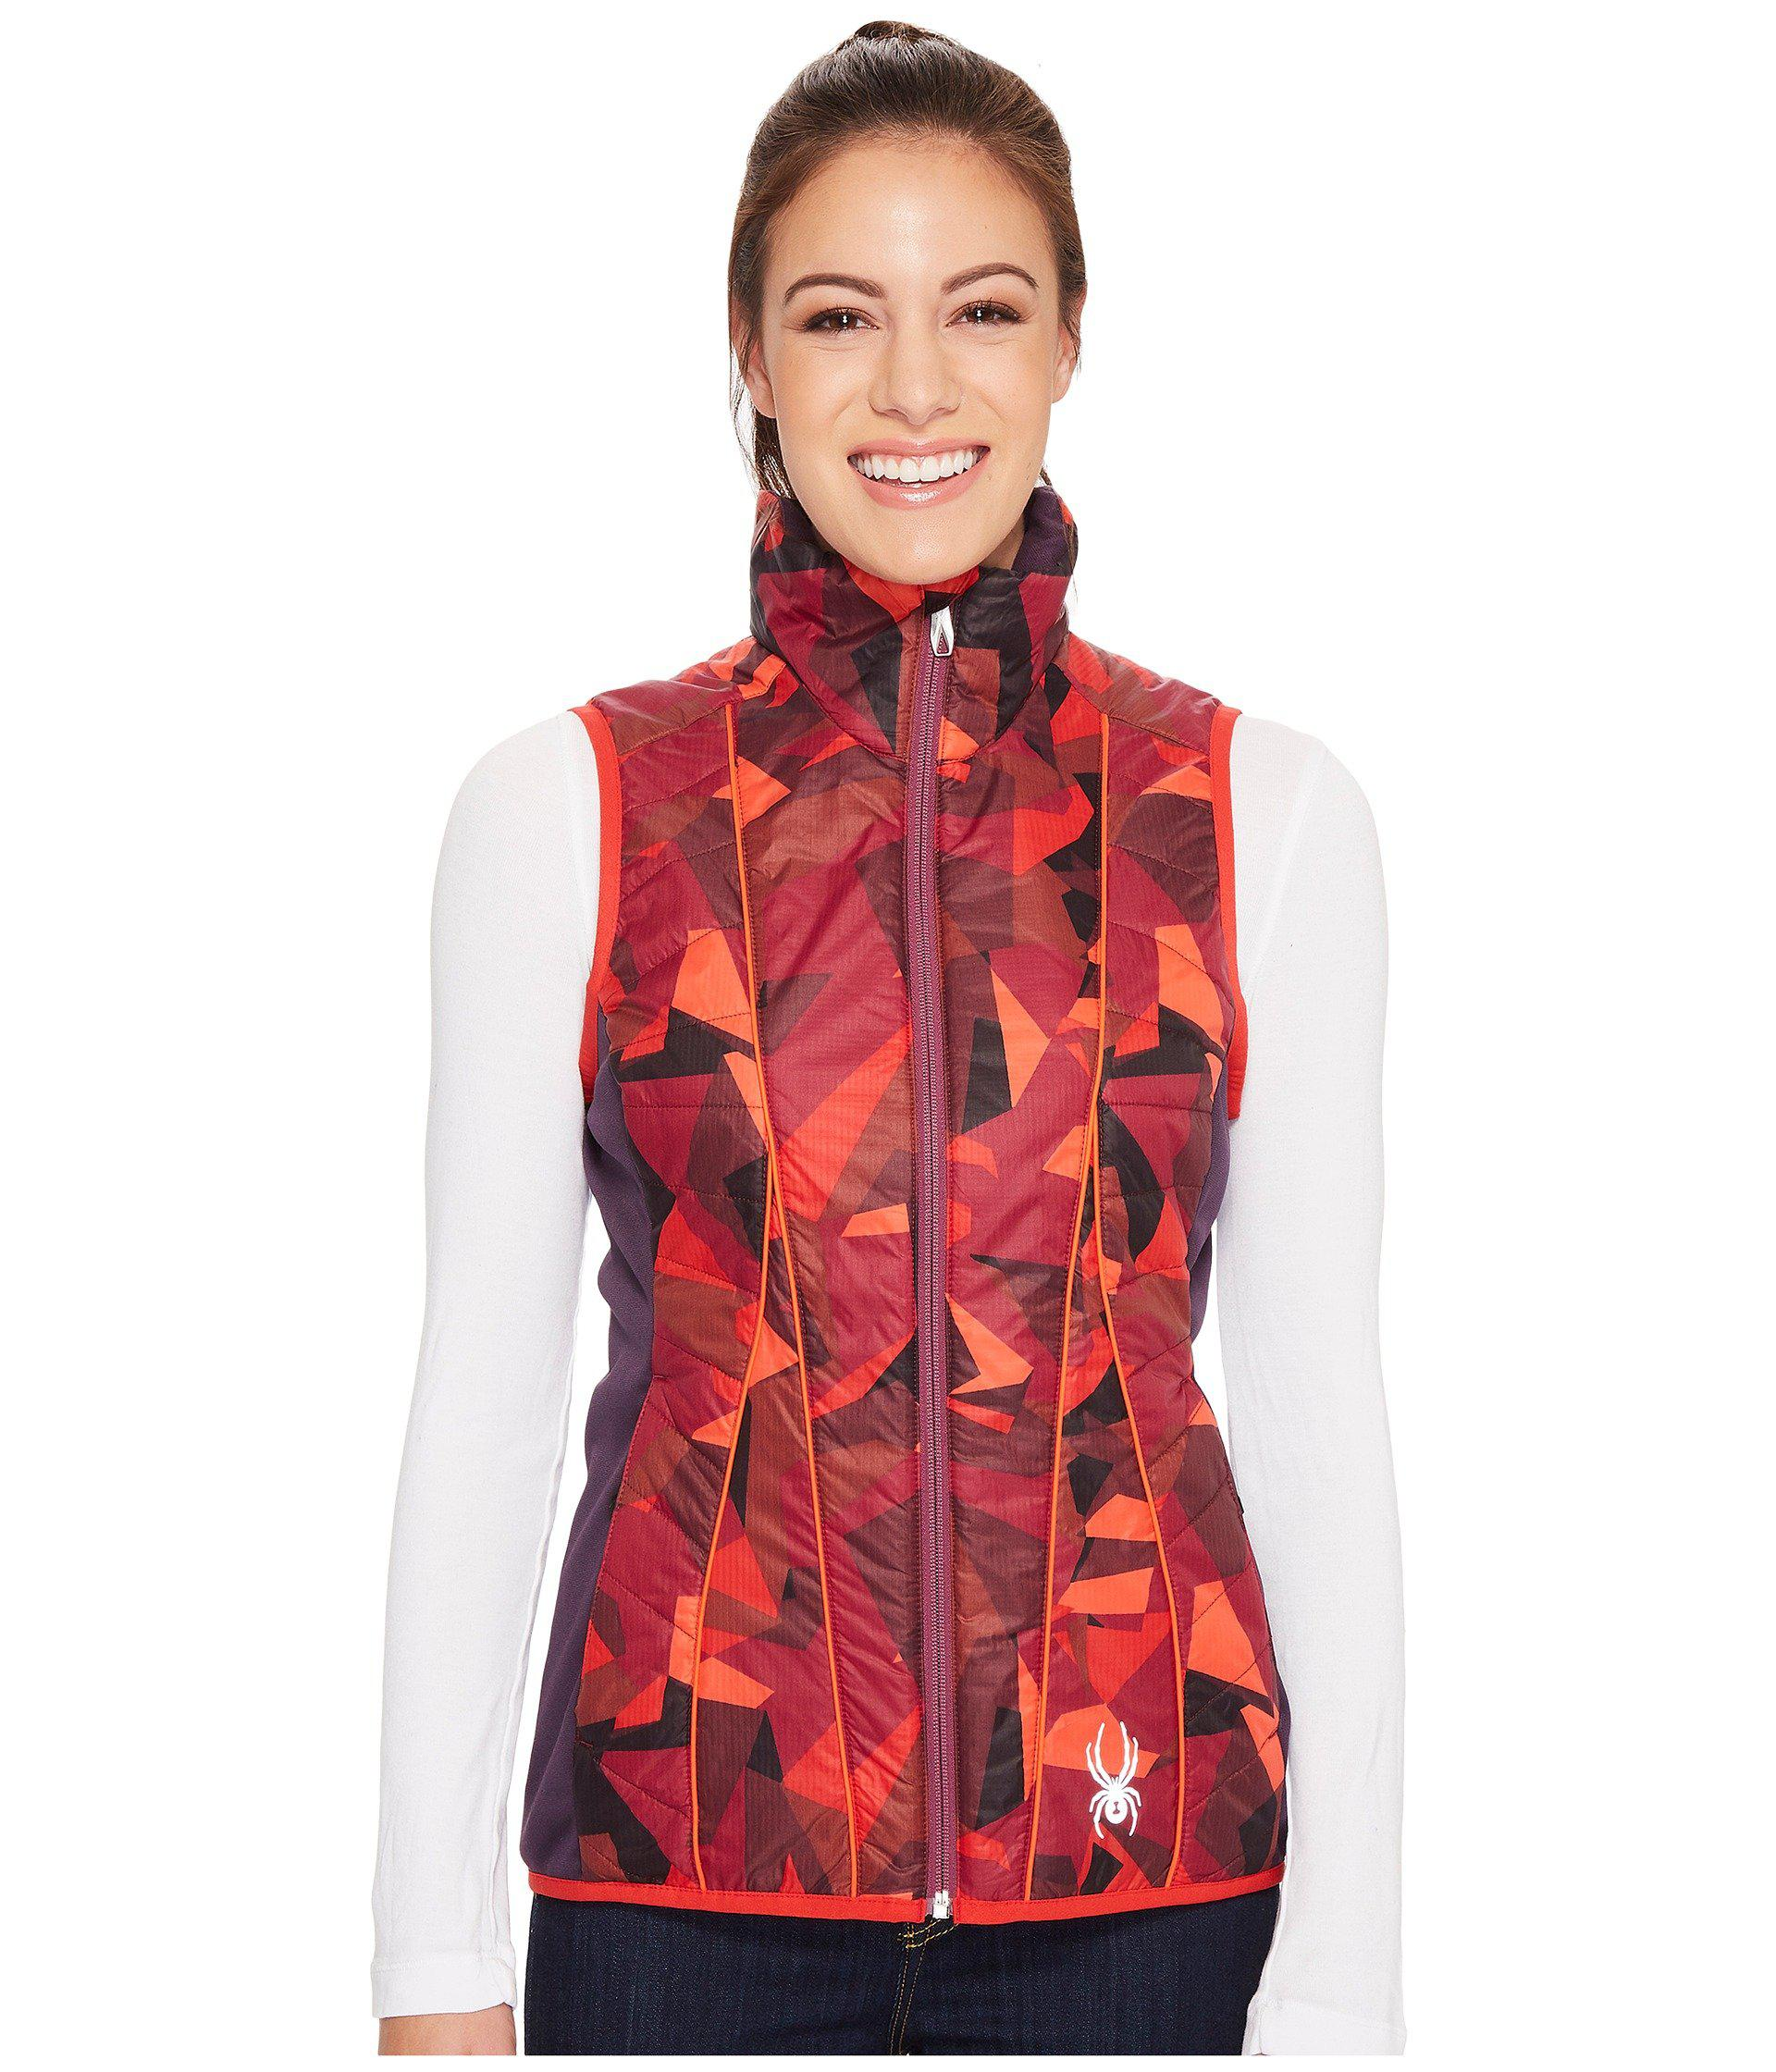 6fed55cd42a6a Lyst - Spyder Glissade Insulator Vest in Red